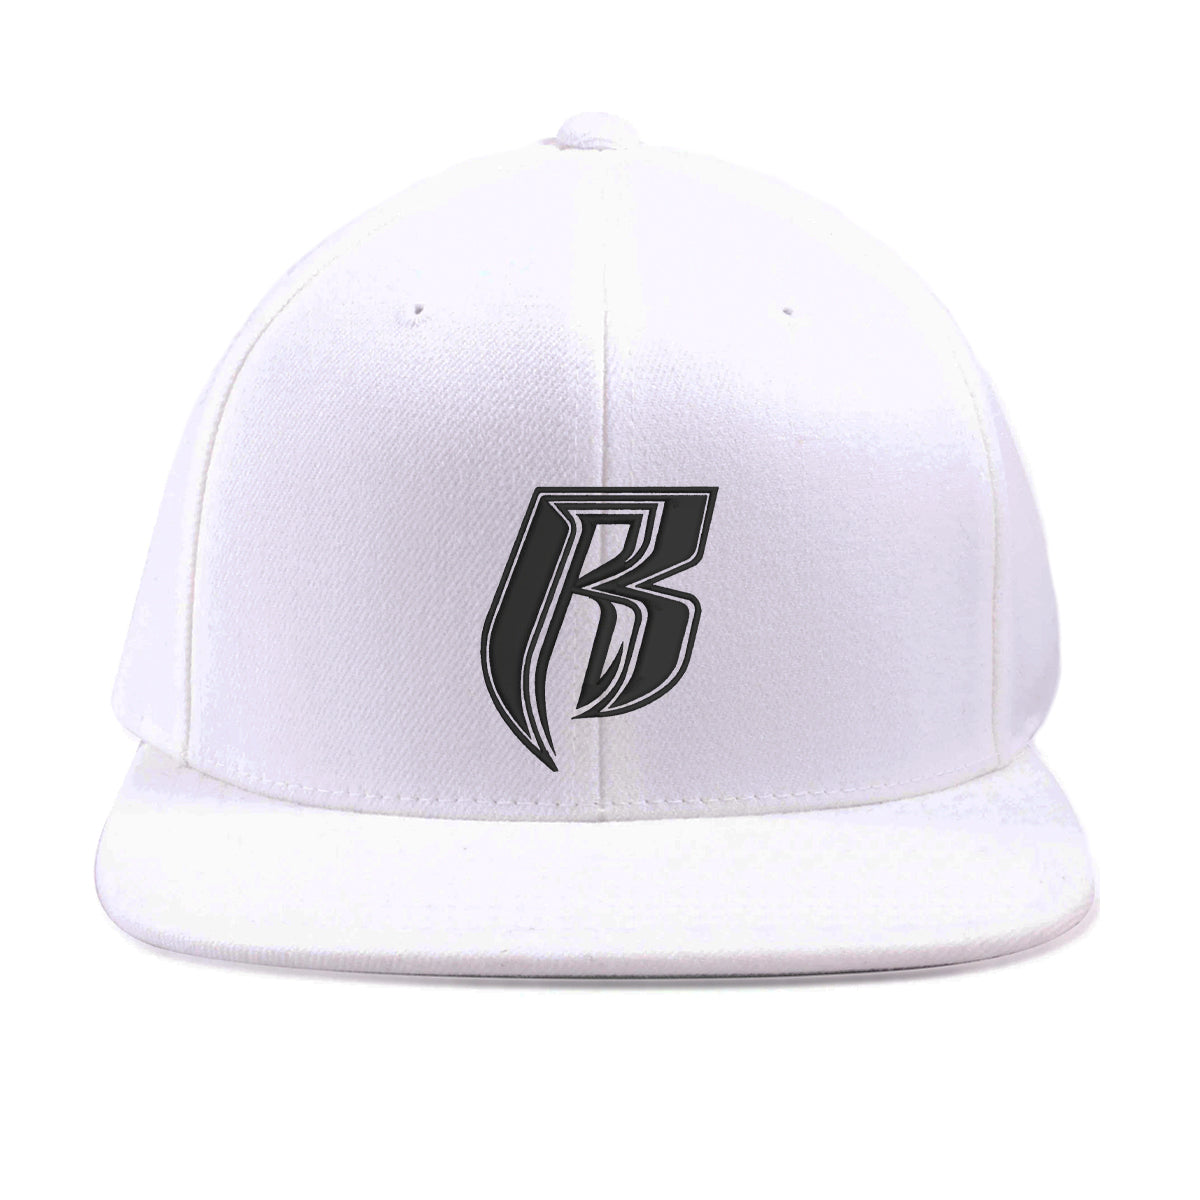 RR Icon Snapback Hat - White/Black